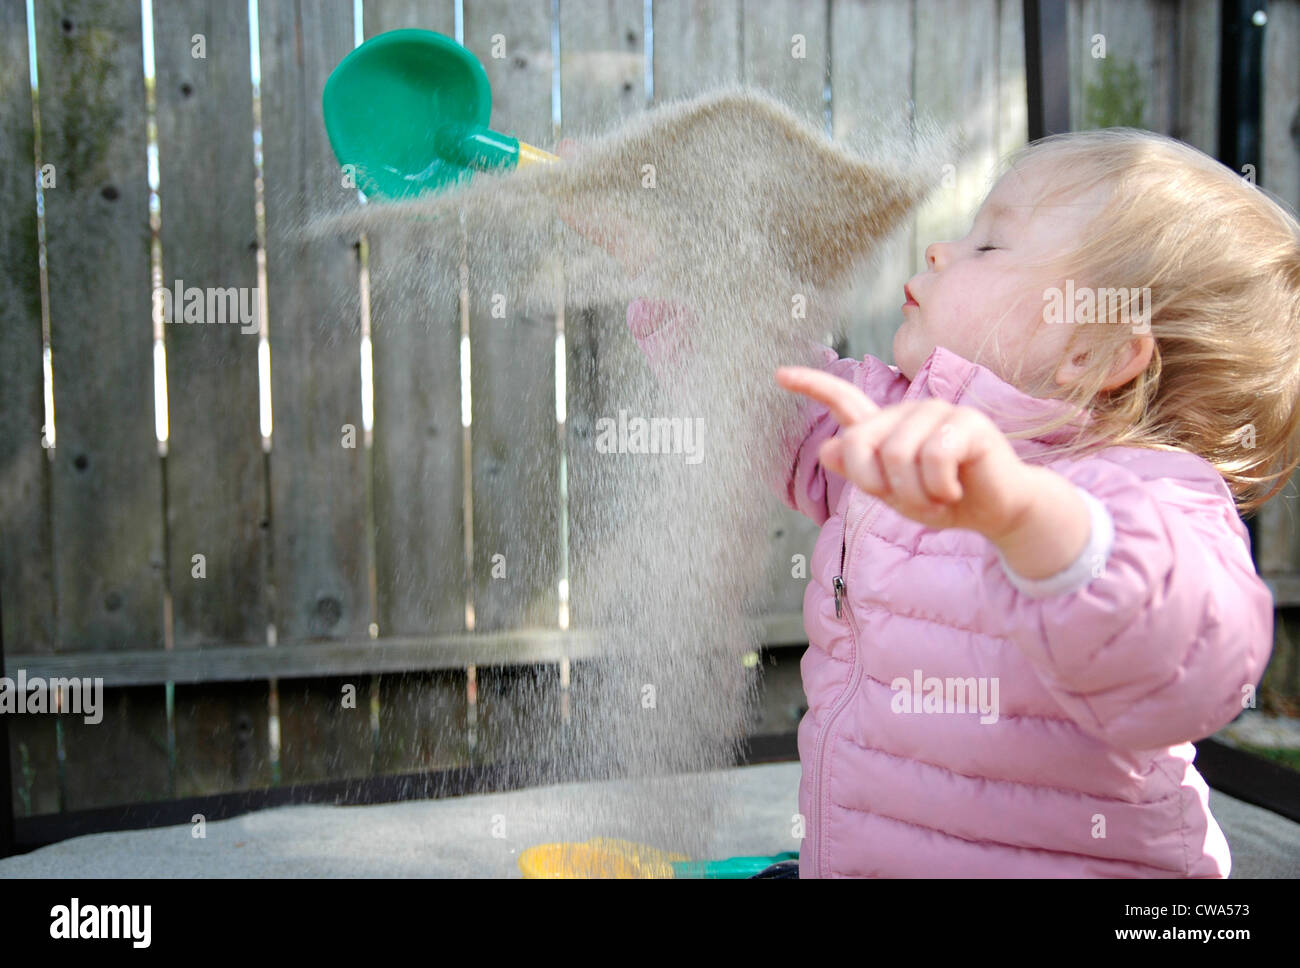 Sand Flies in Toddler Face Stock Photo